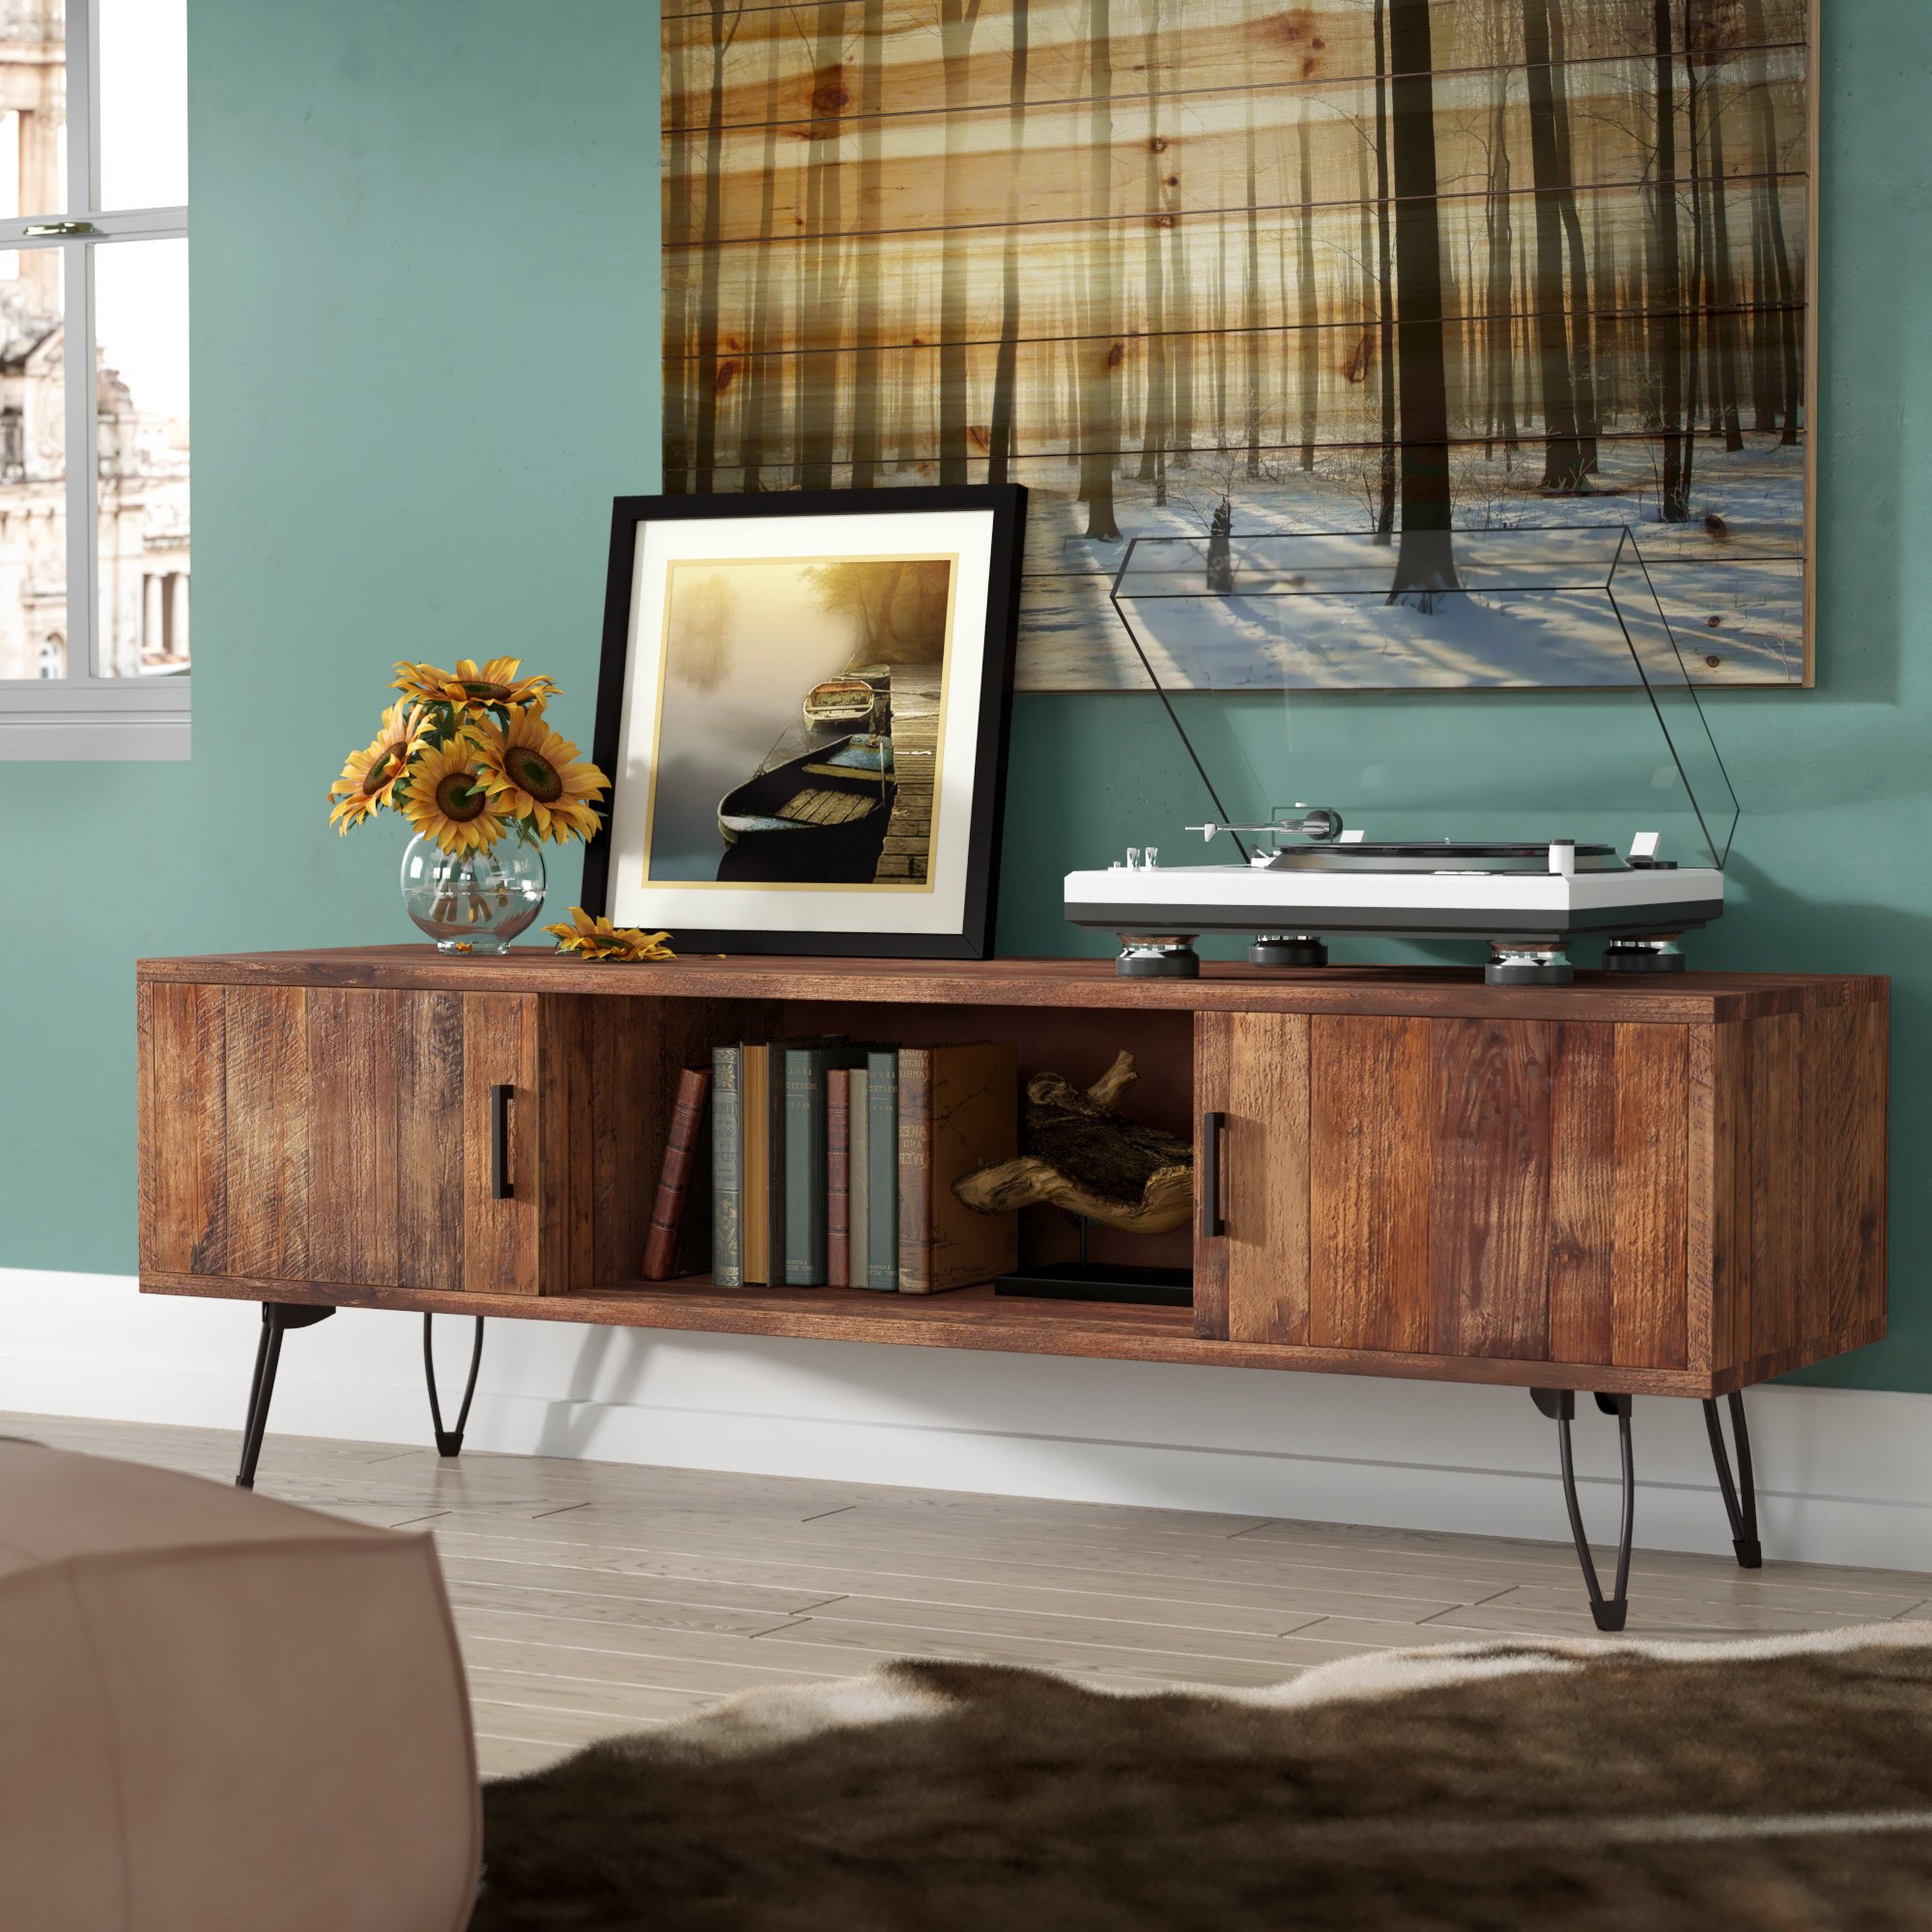 Solid Wood Tv Stands & Entertainment Centers You'll Love | Wayfair Throughout Natural Wood Mirrored Media Console Tables (View 17 of 20)